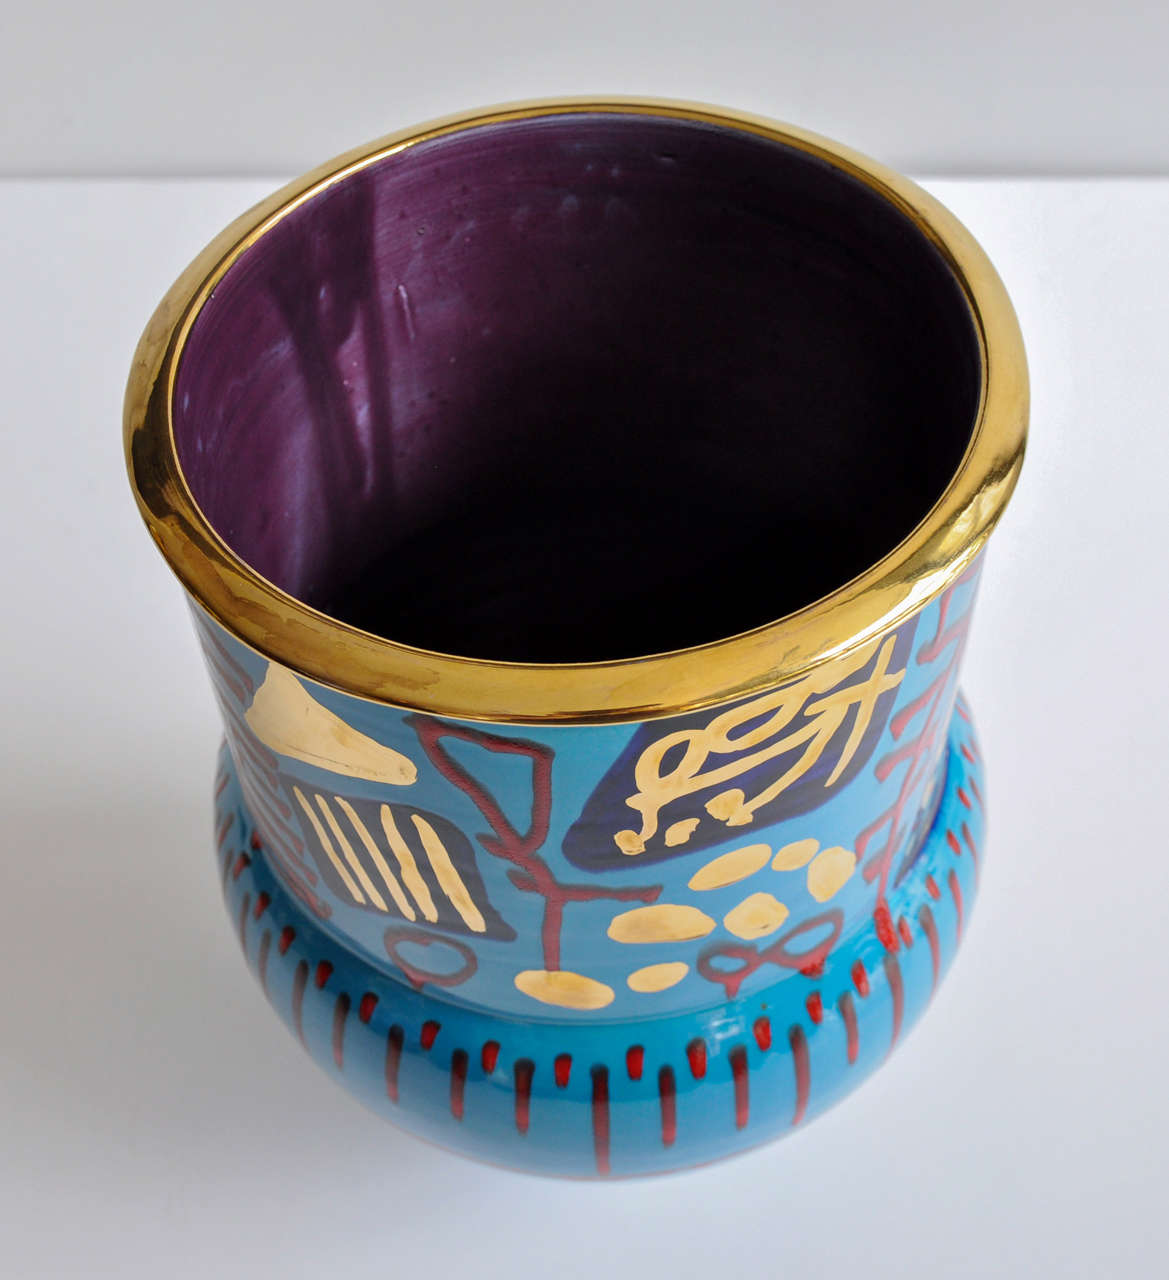 Modern 1980s Monumental Ceramic Vessel by Anna Silver For Sale